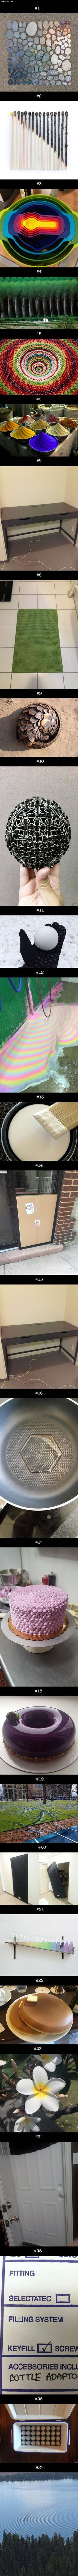 27 Oddly Satisfying Photos That Are Just Right